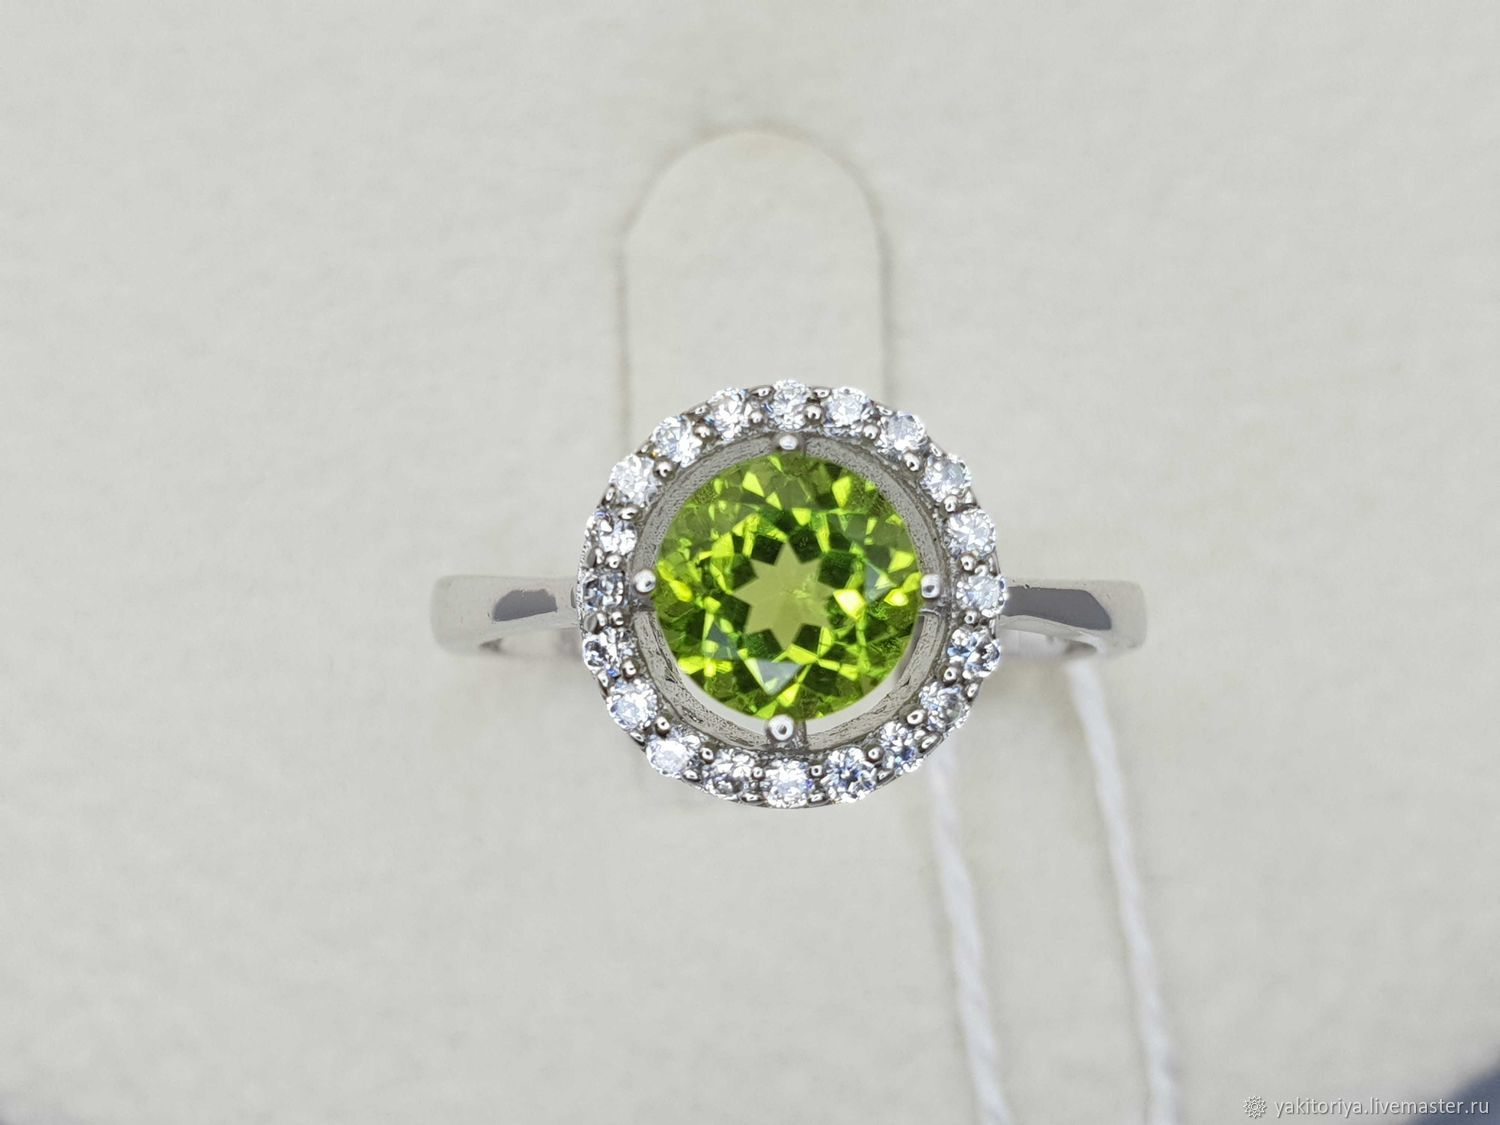 Silver ring with 6 mm chrysolite and cubic zirconia, Rings, Moscow,  Фото №1